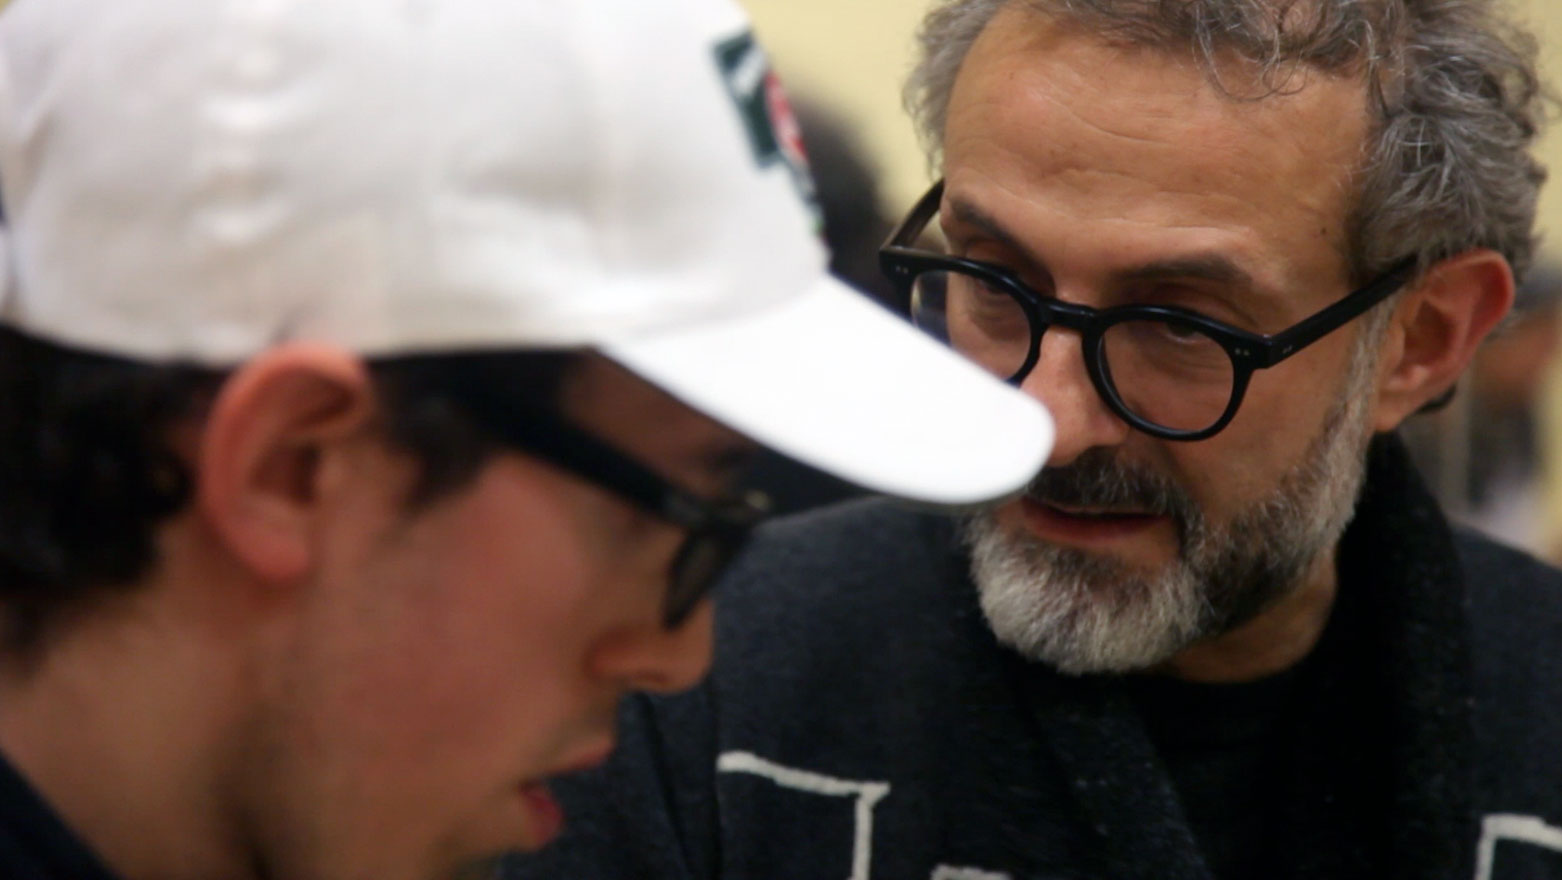 Massimo Bottura (right) at Il Tortellante. Image courtesy of Aut Aut Modena